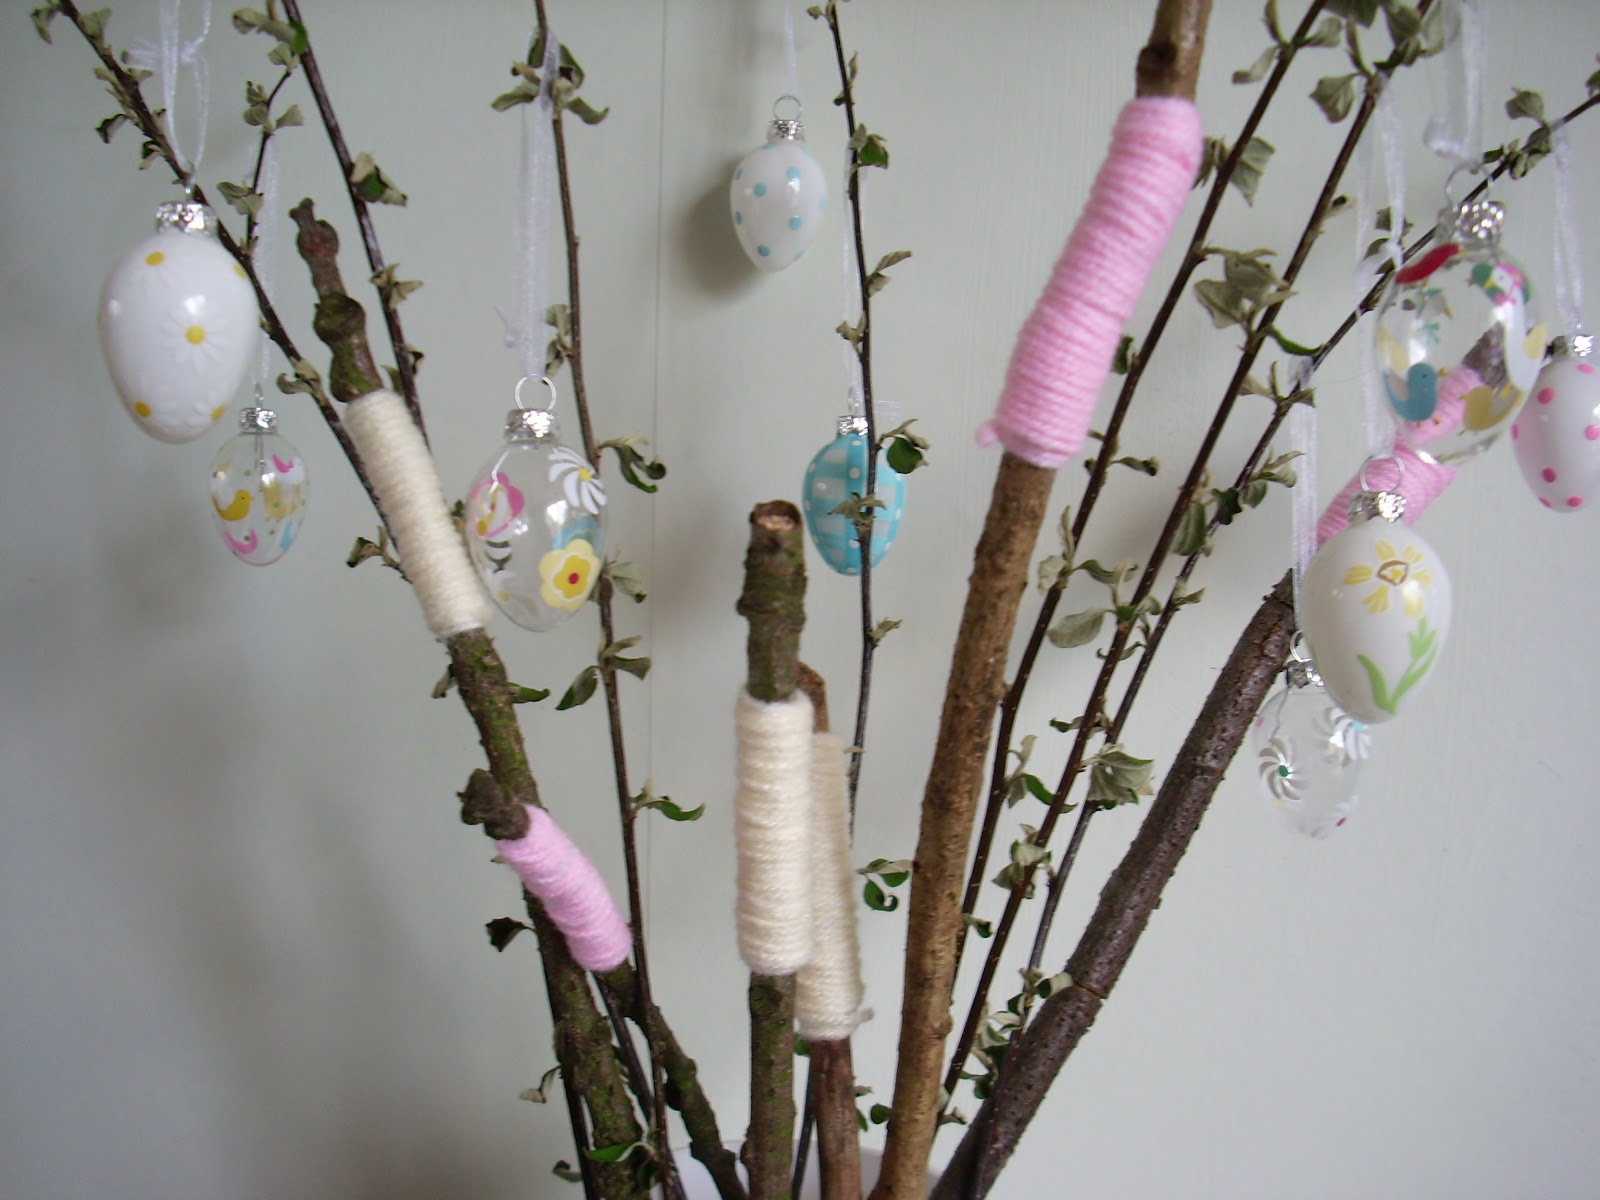 get article lifestyle these hanging xpos with decoration set for decorations xpose rabbits glitter easter citing of six egg decor buys eggciting cracking